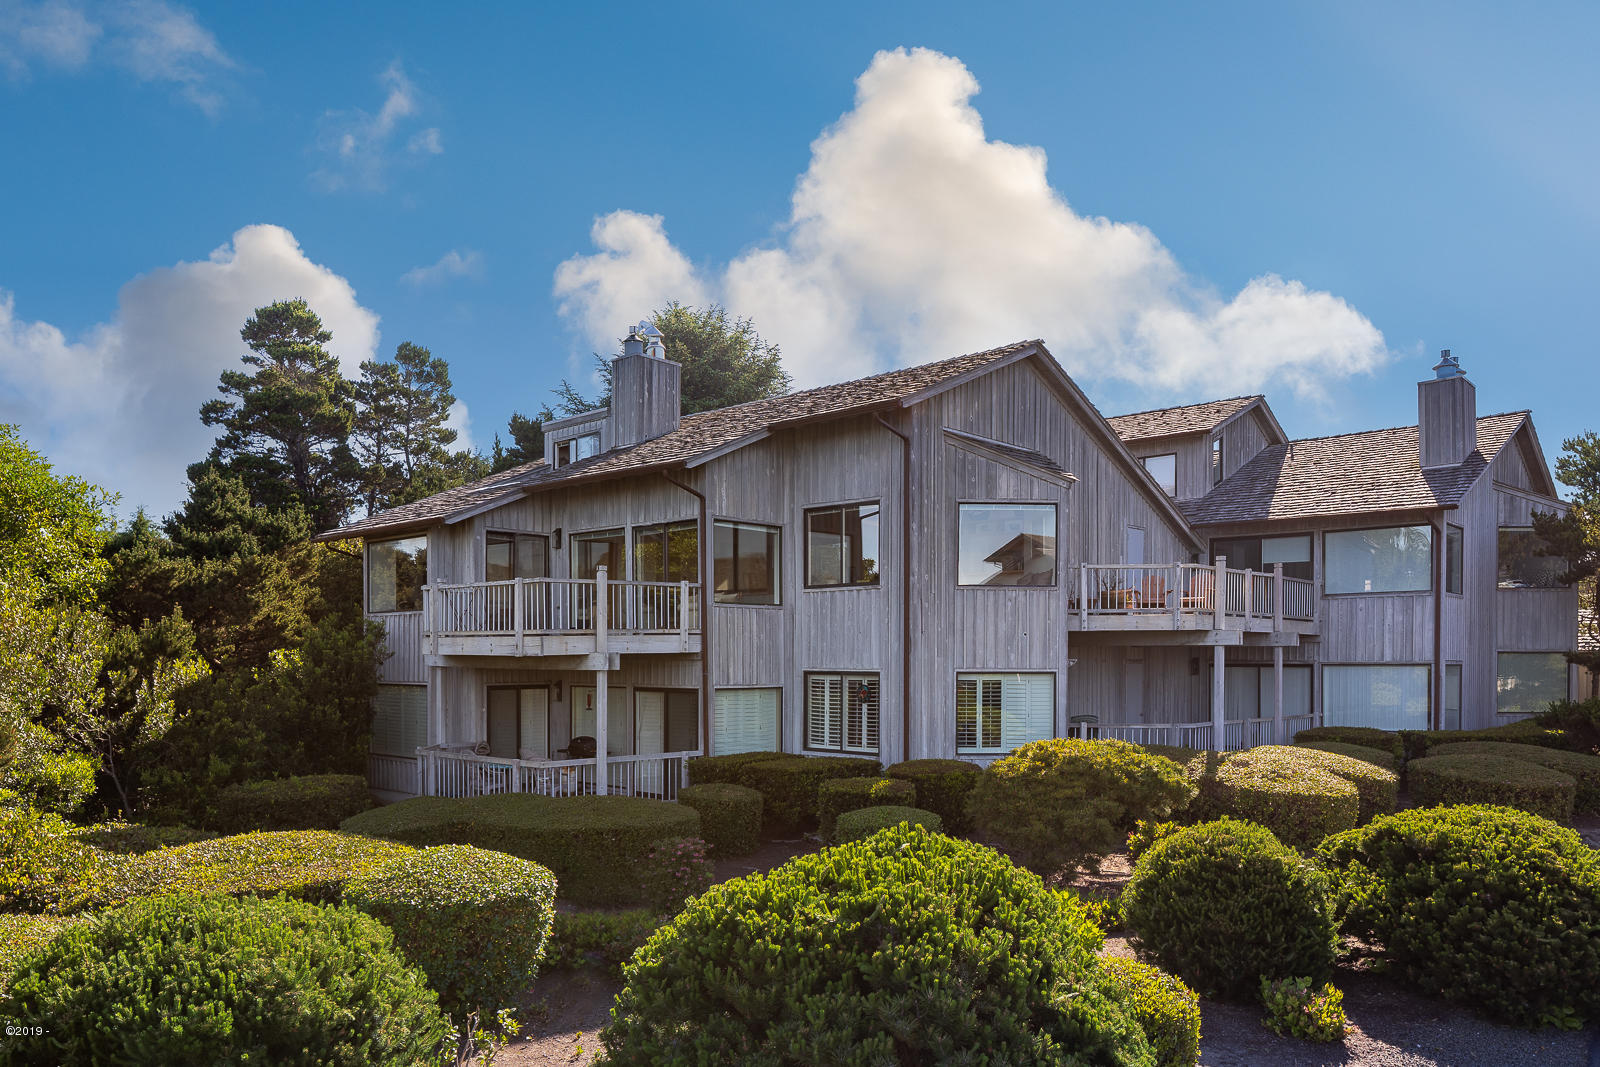 4175 Hwy 101 N, A-4, Depoe Bay, OR 97388 - SeaRidge Condo